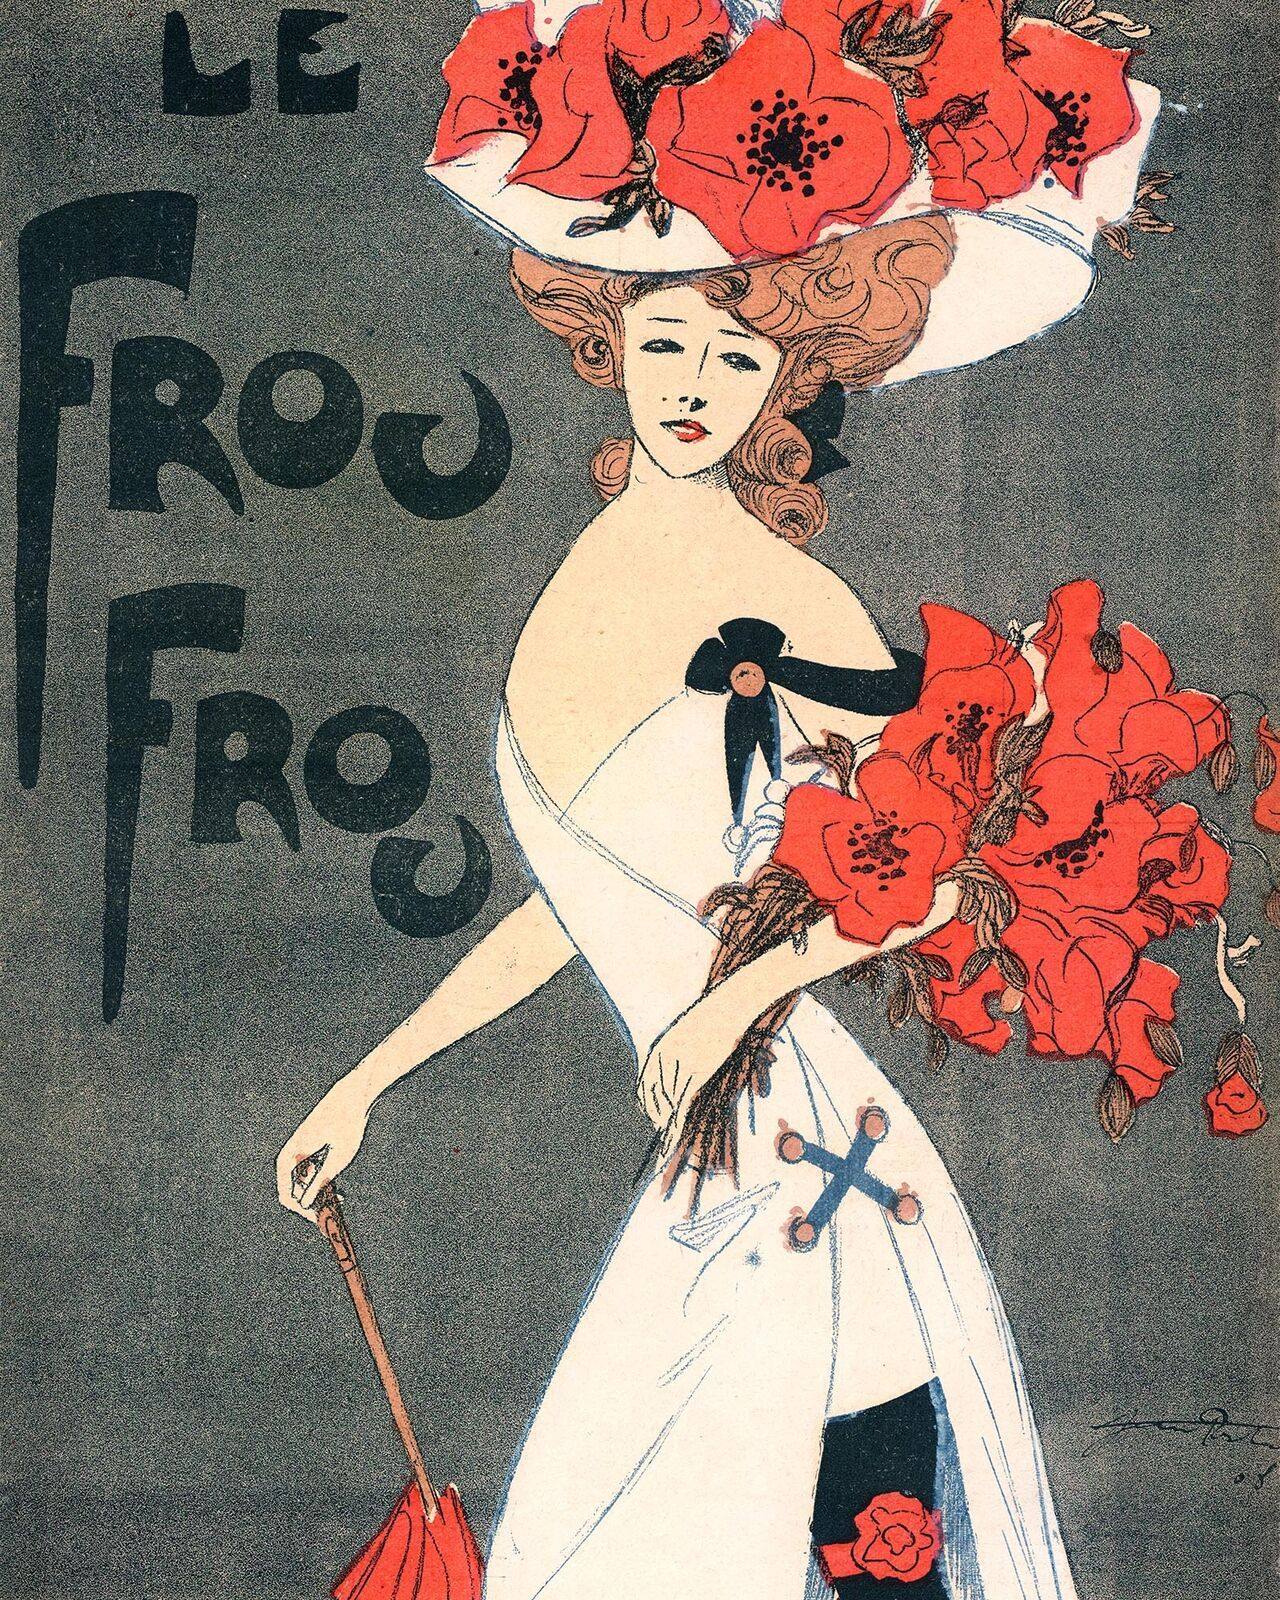 Le Frou Frou: Girl In White And Red w/Umbrella - 1908 - $12.82 - $19.75